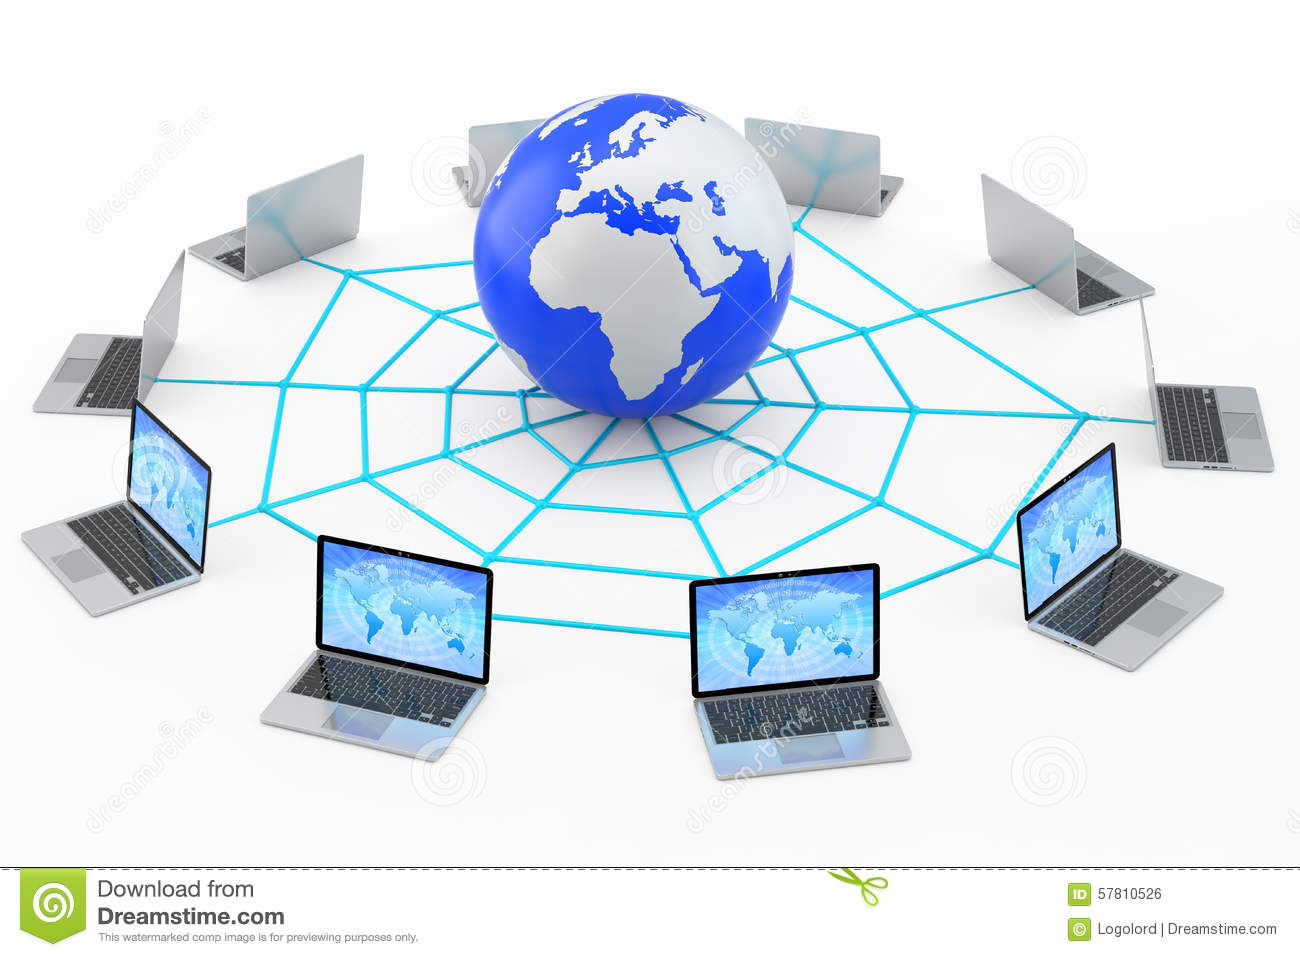 laptops-connected-to-internet-world-wide-web-d-57810526.jpg